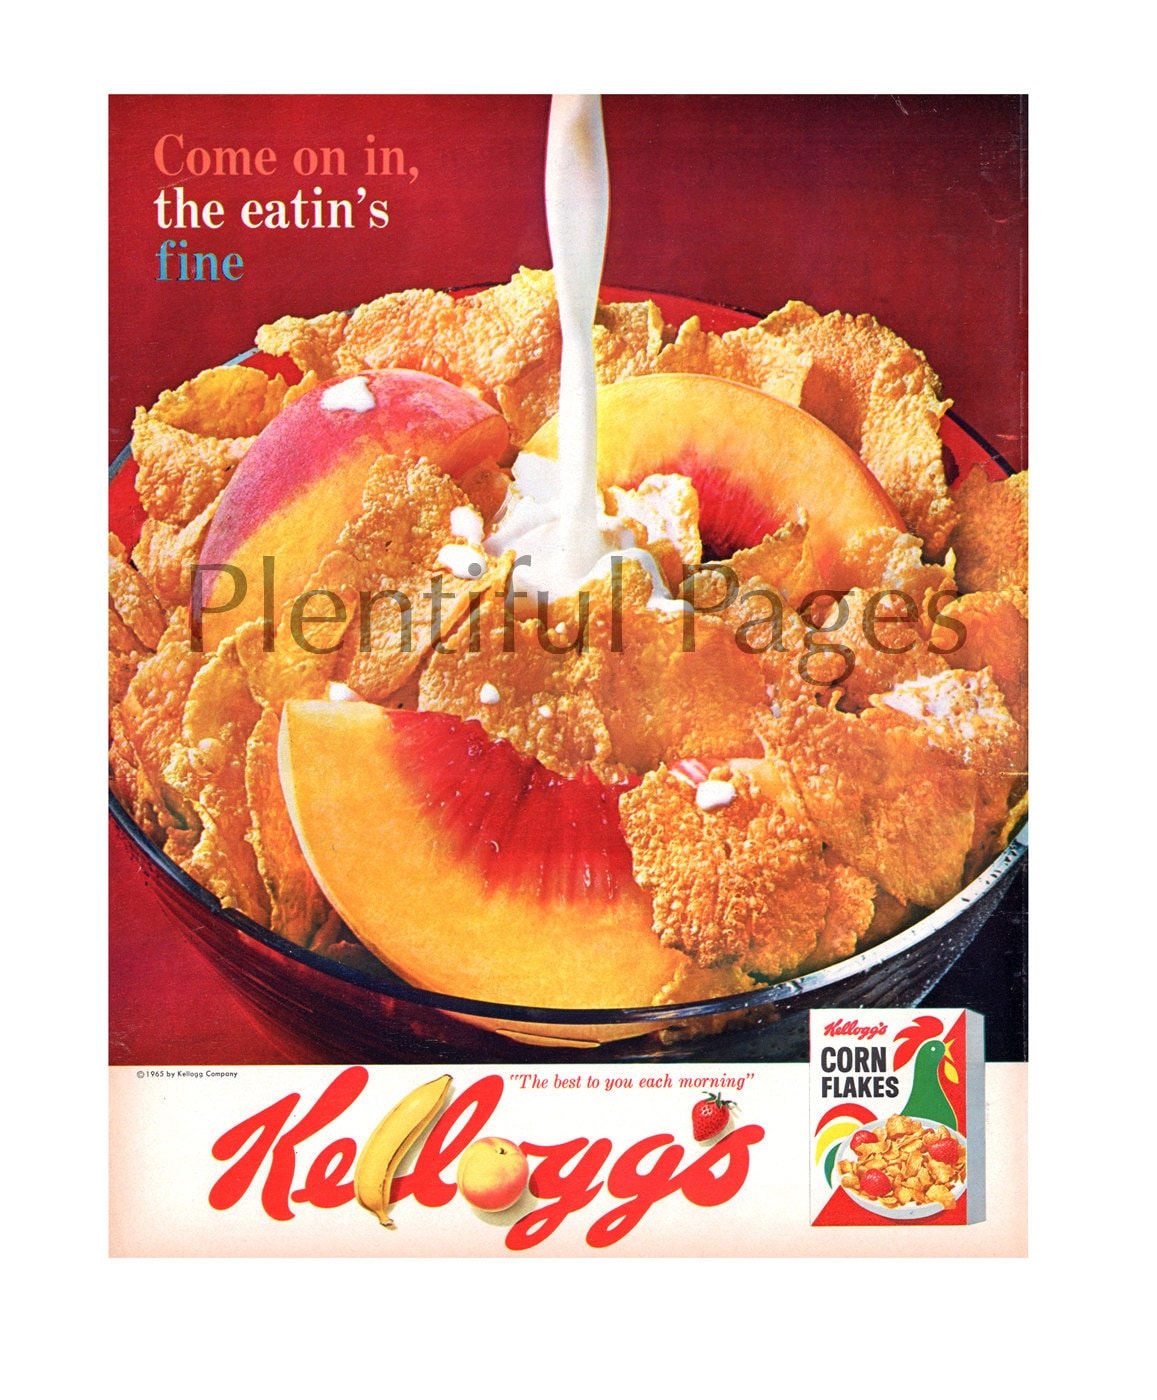 1965 Kellogg's Corn Flakes Vintage Ad, 1960's Breakfast, Cereal, Retro Ad,  Peaches, Breakfast, Great for Framing or Collage